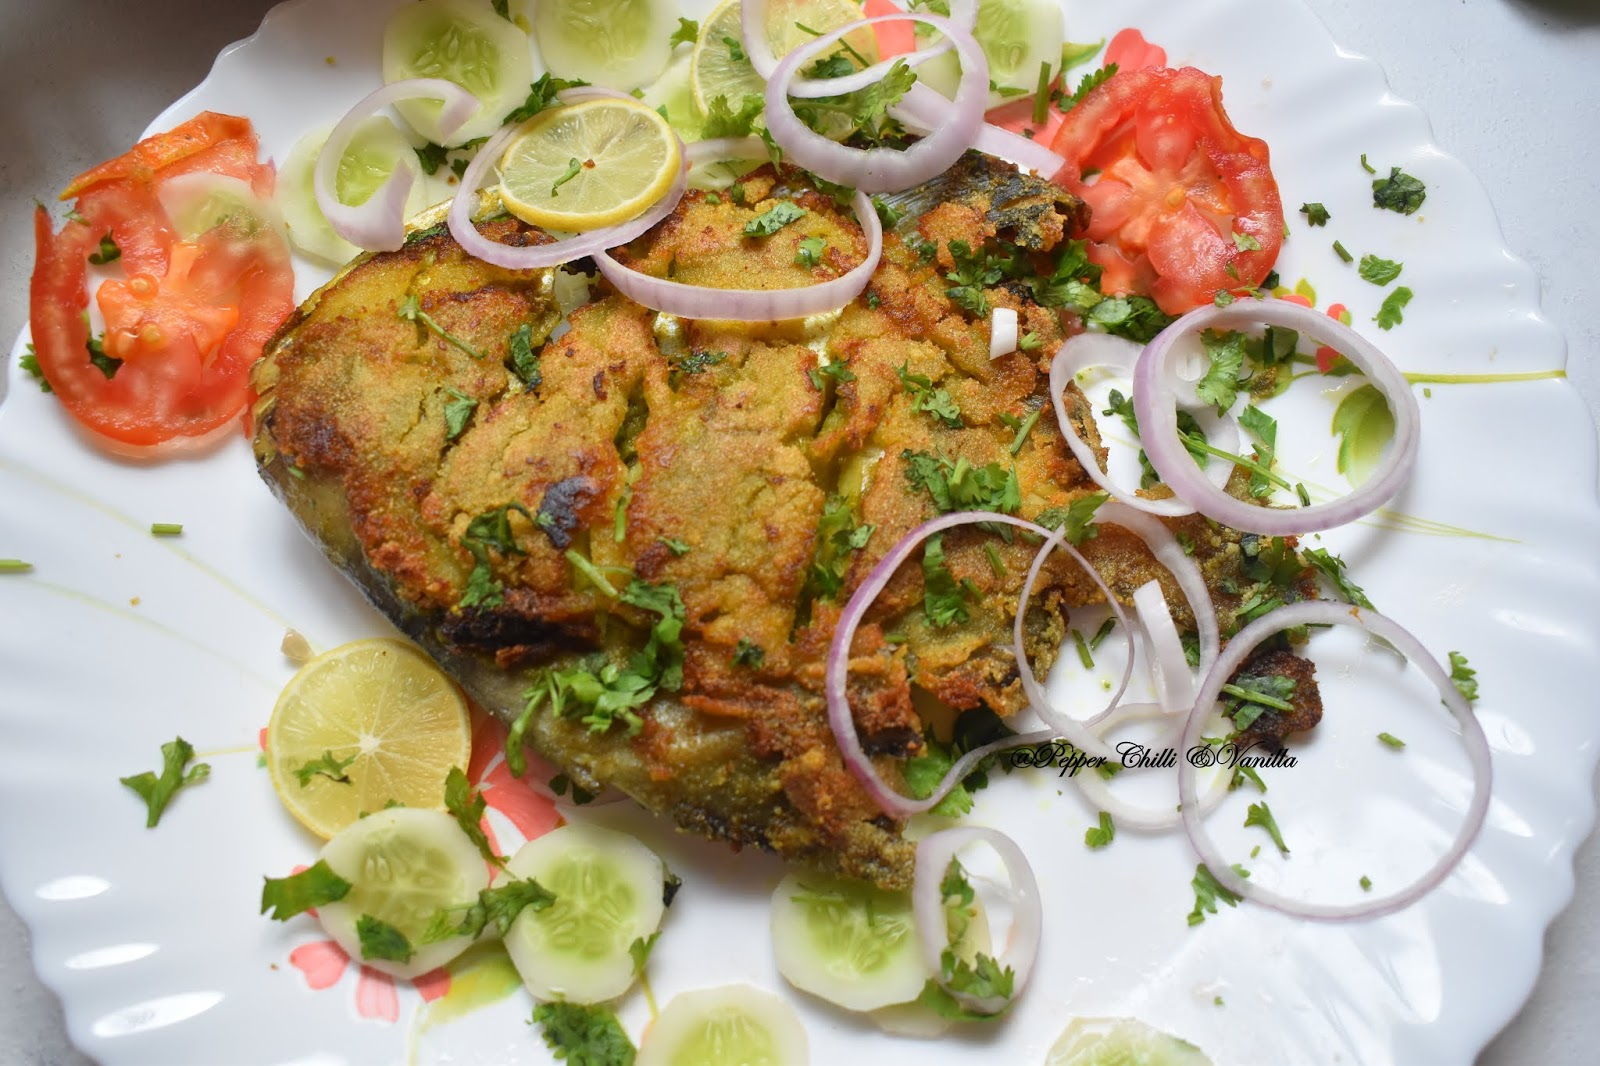 malvani style fish fry,east indian fish fry